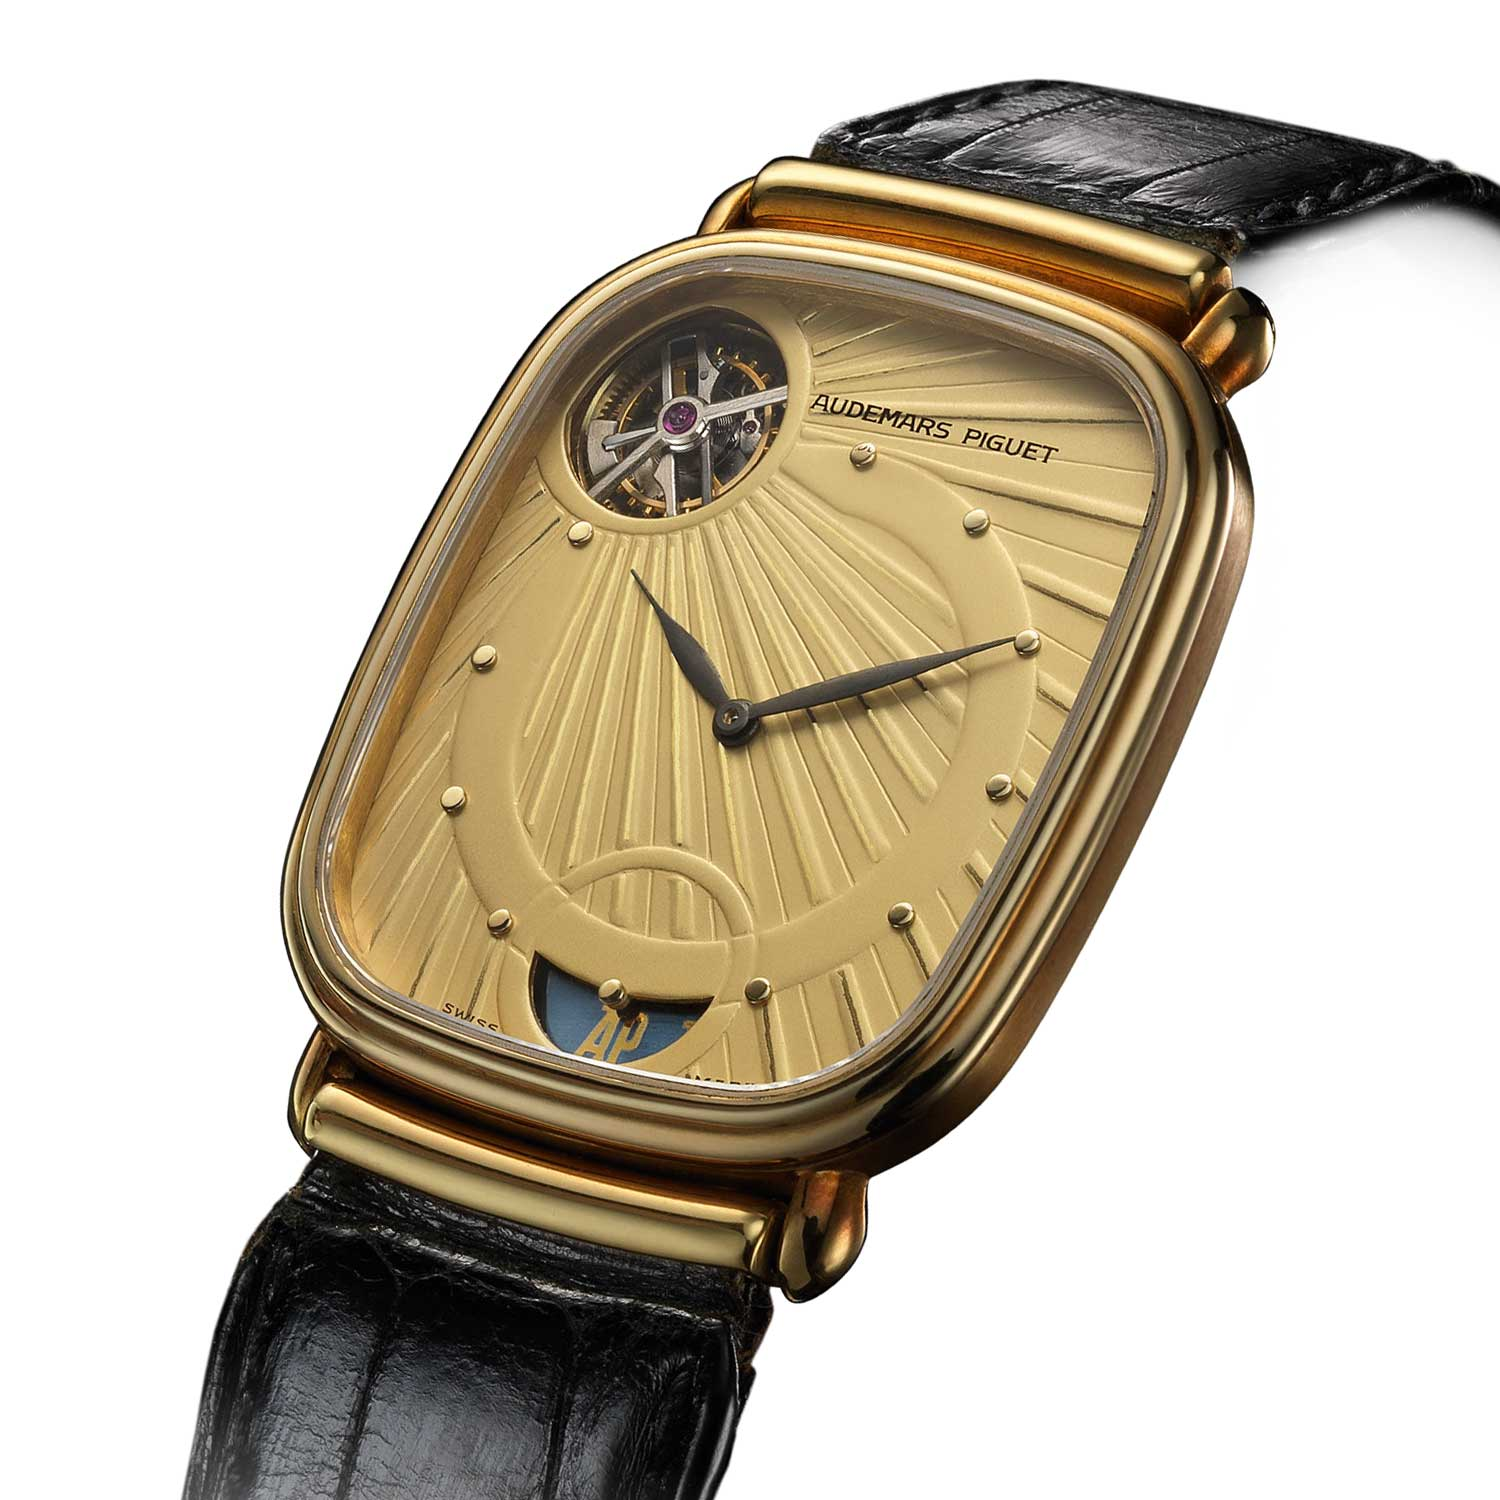 A prime example of Jacqueline Dimier,'s design work is the 1986 Audemars Piguet Tourbillon, calibre 2870